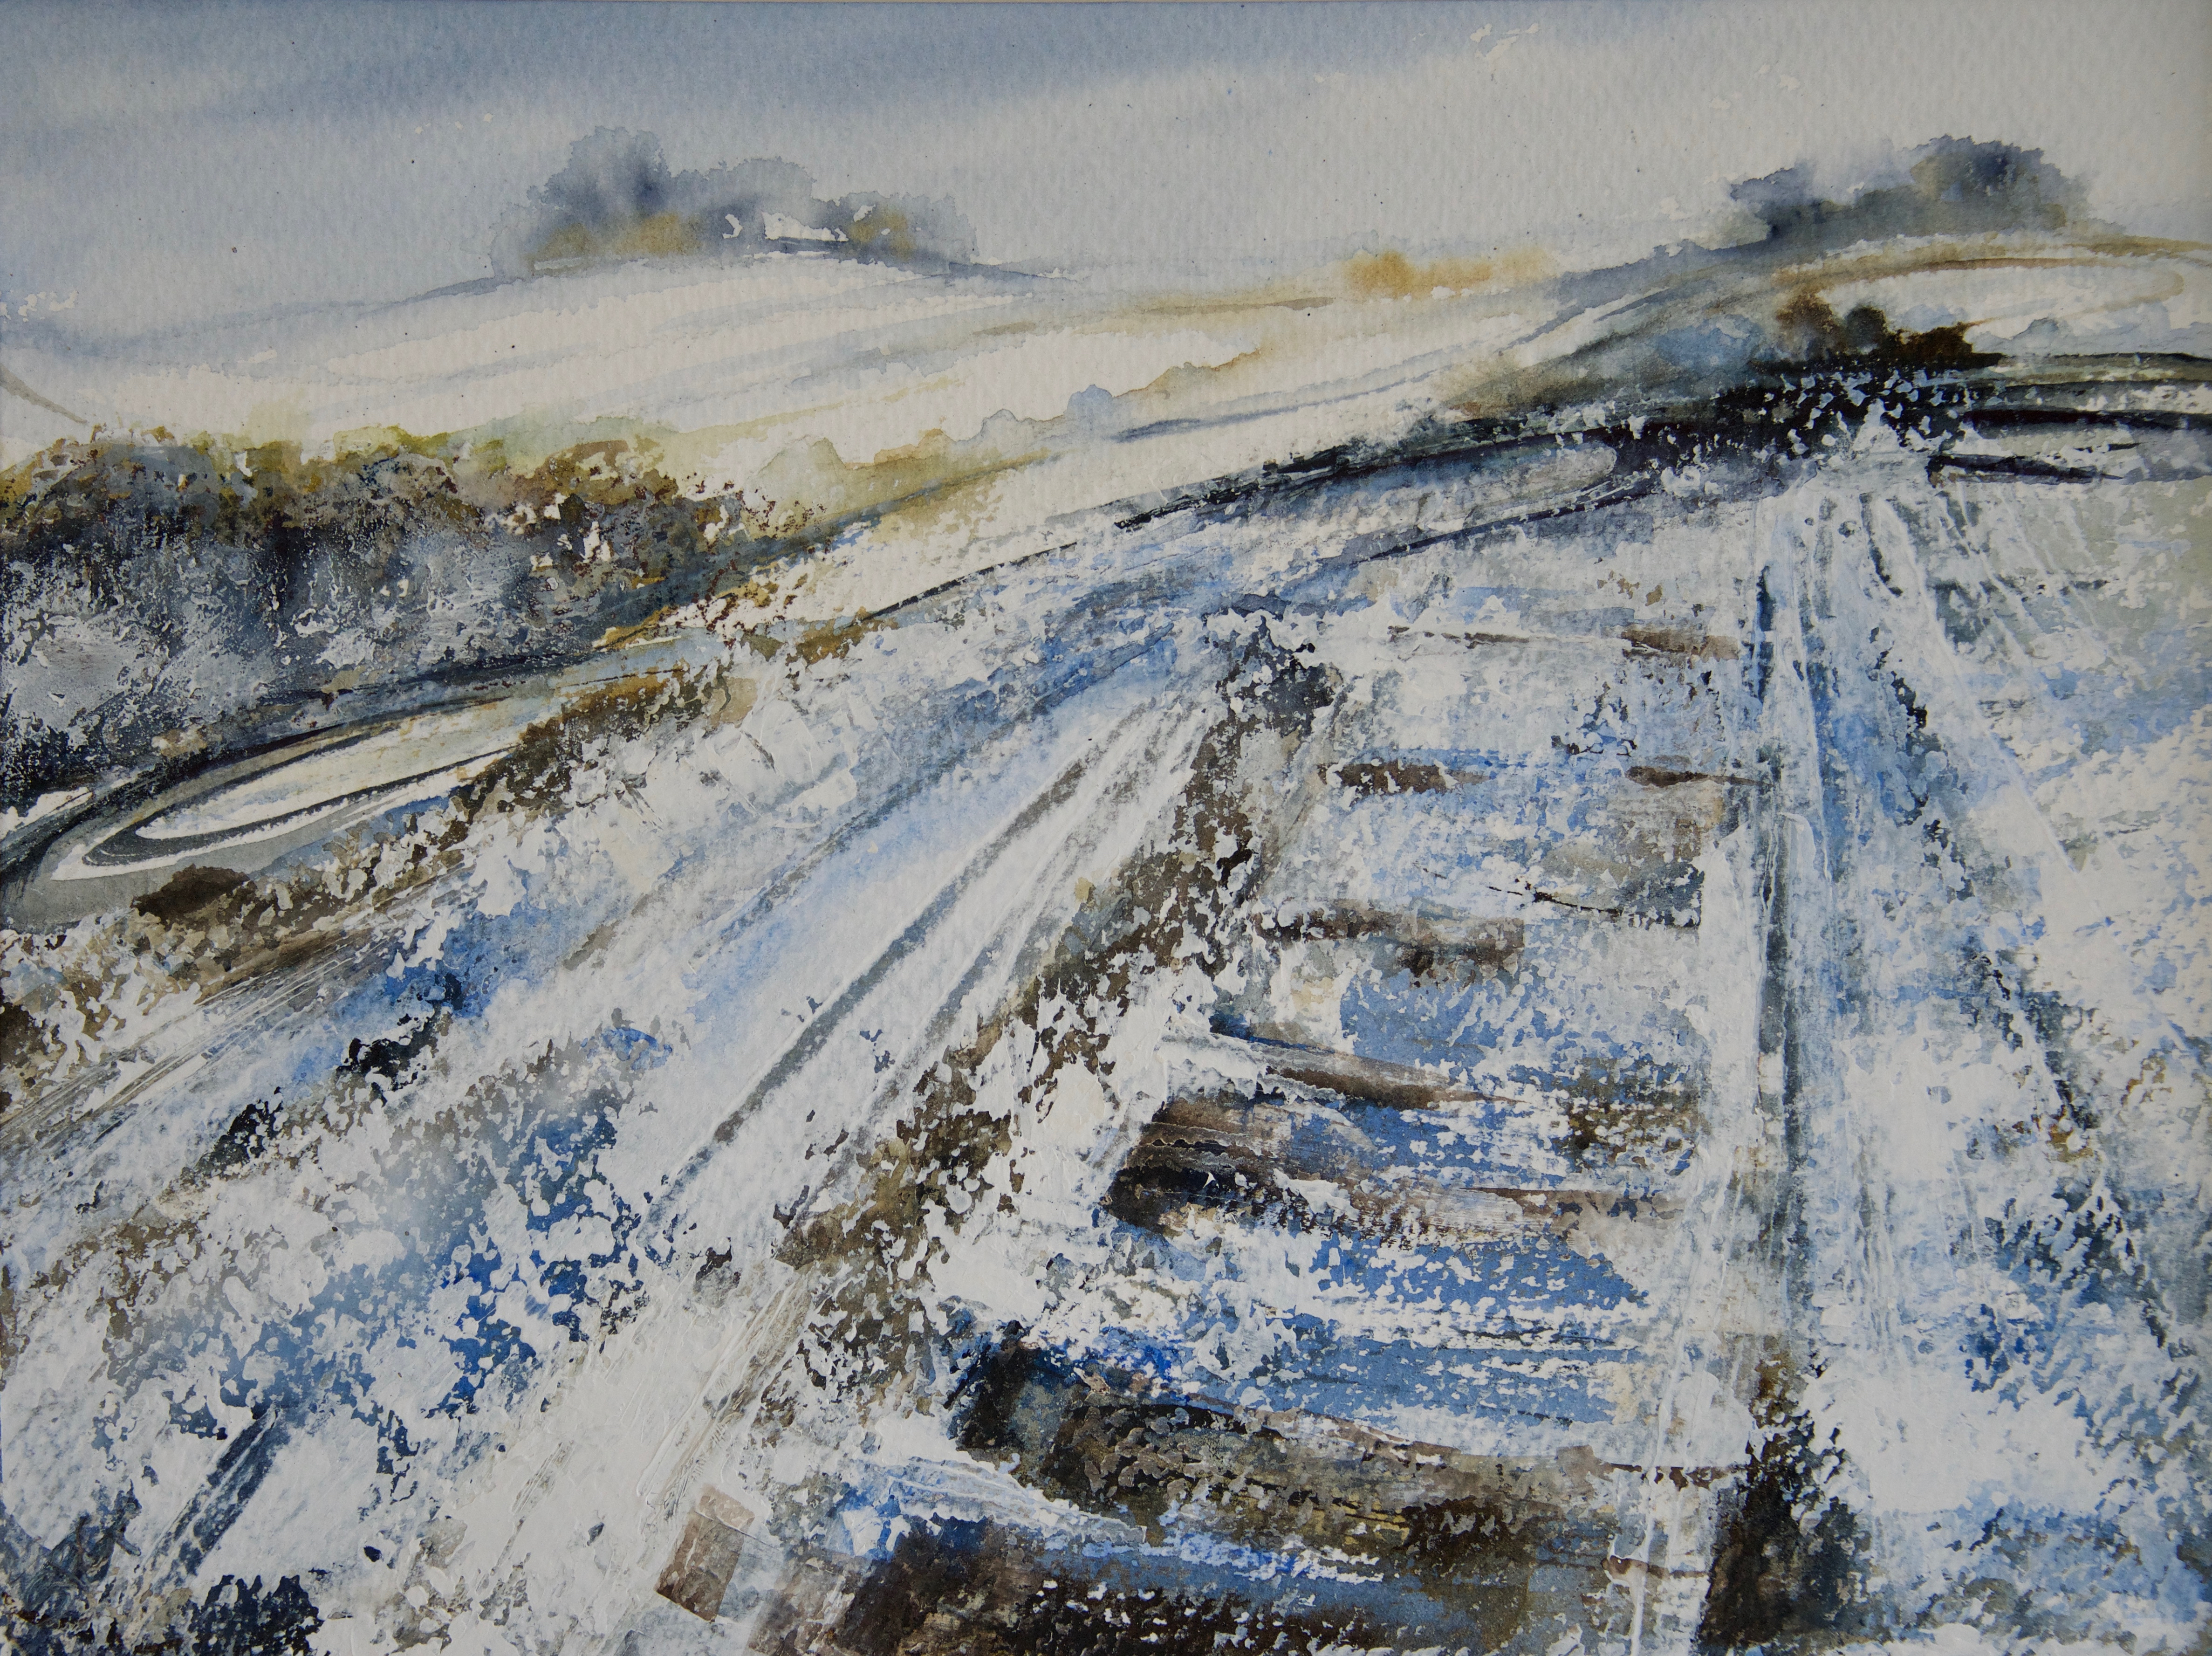 Snowfall at The Dig, Earth Trust (in the Shadow of Wittenham Clumps)